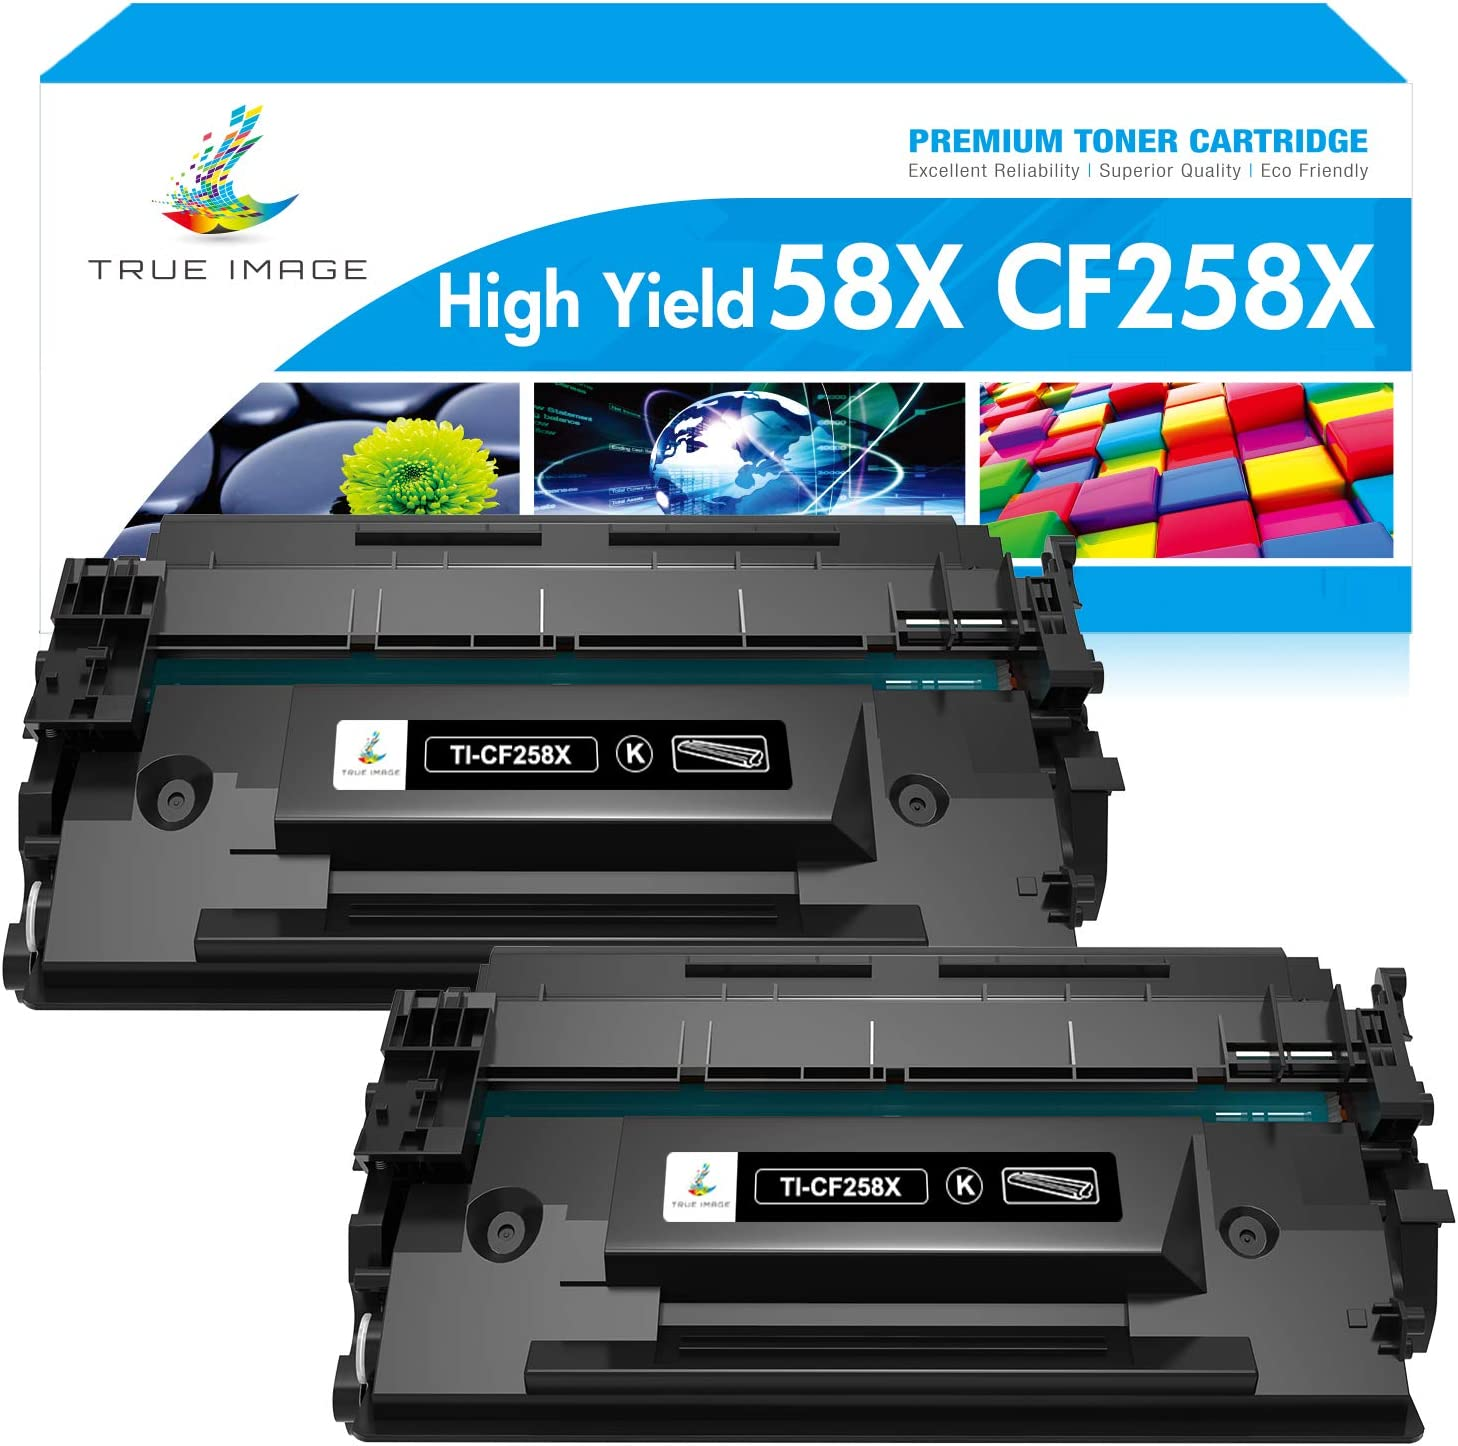 True Image Compatible Toner Cartridge Replacement for HP 58X 58A CF258A CF258X M428fdw HP Laserjet Pro M404n M404dn M404dw MFP M428fdn M428dw M304 M404 M428 Printer Toner (Black, 2-Pack)